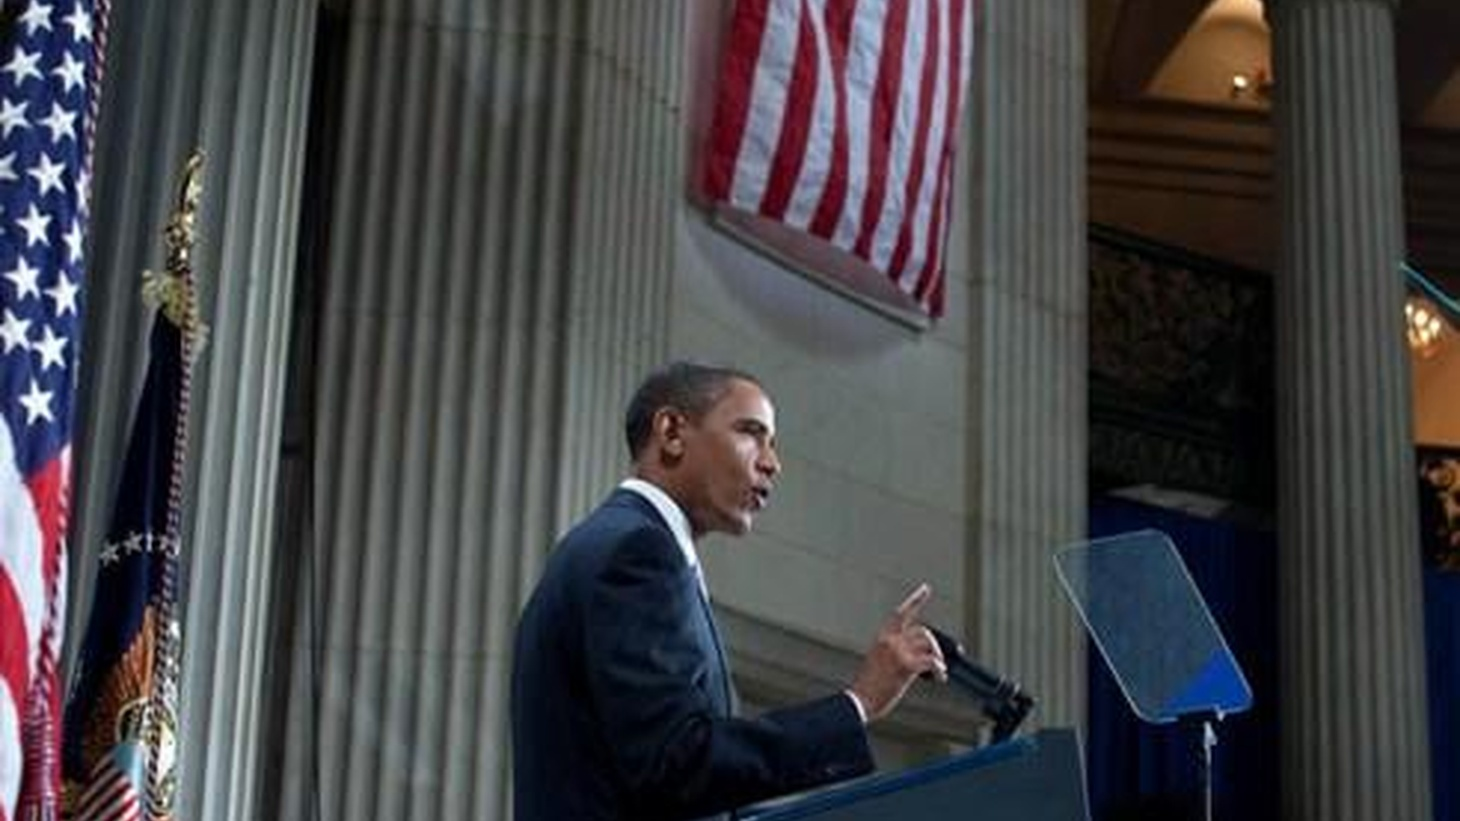 President Obama is on Wall Street this morning to mark the first anniversary of the collapse of Lehman Brothers. The President is expected to outline changes needed to avert a future global crisis like the one that threw the economy into a tailspin. NPR News will provide live coverage of President Obama's address at9:10am.